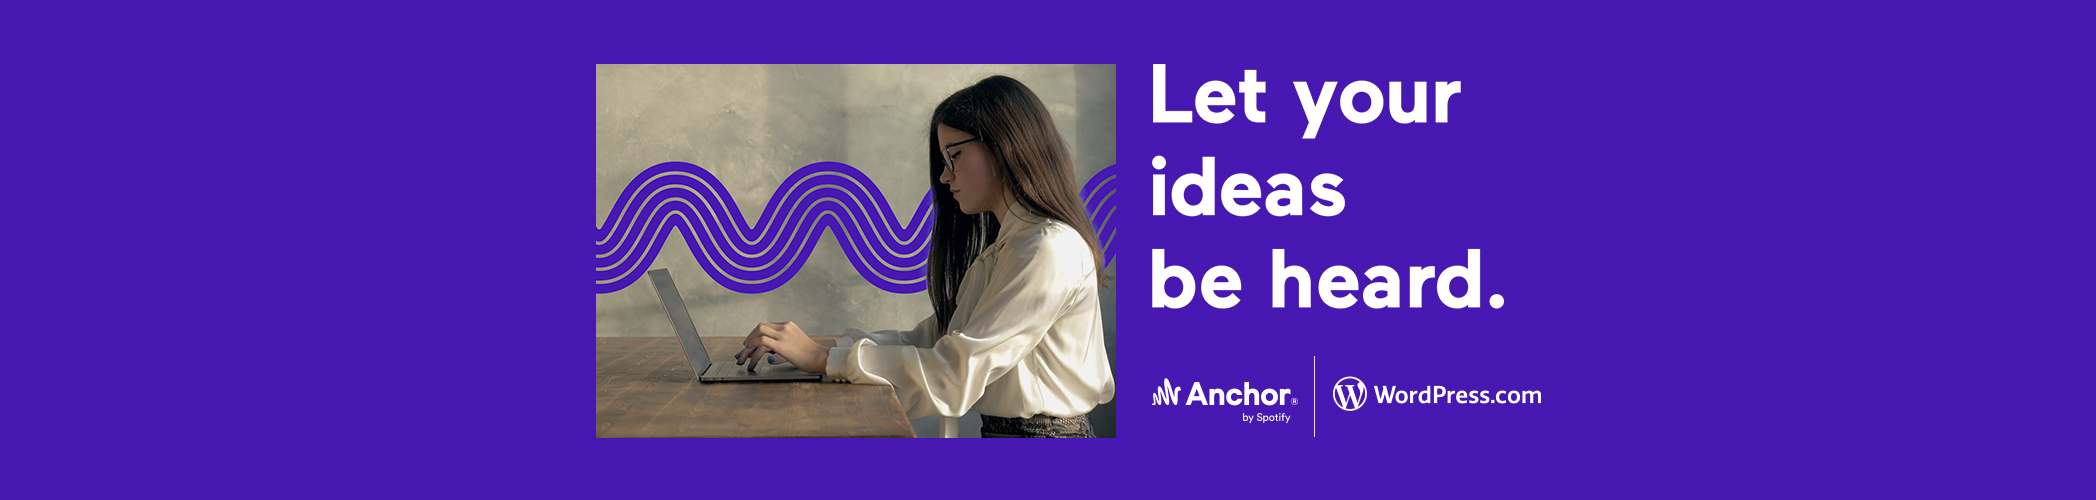 Turn Your WordPress.com Blog into a Podcast with Anchor